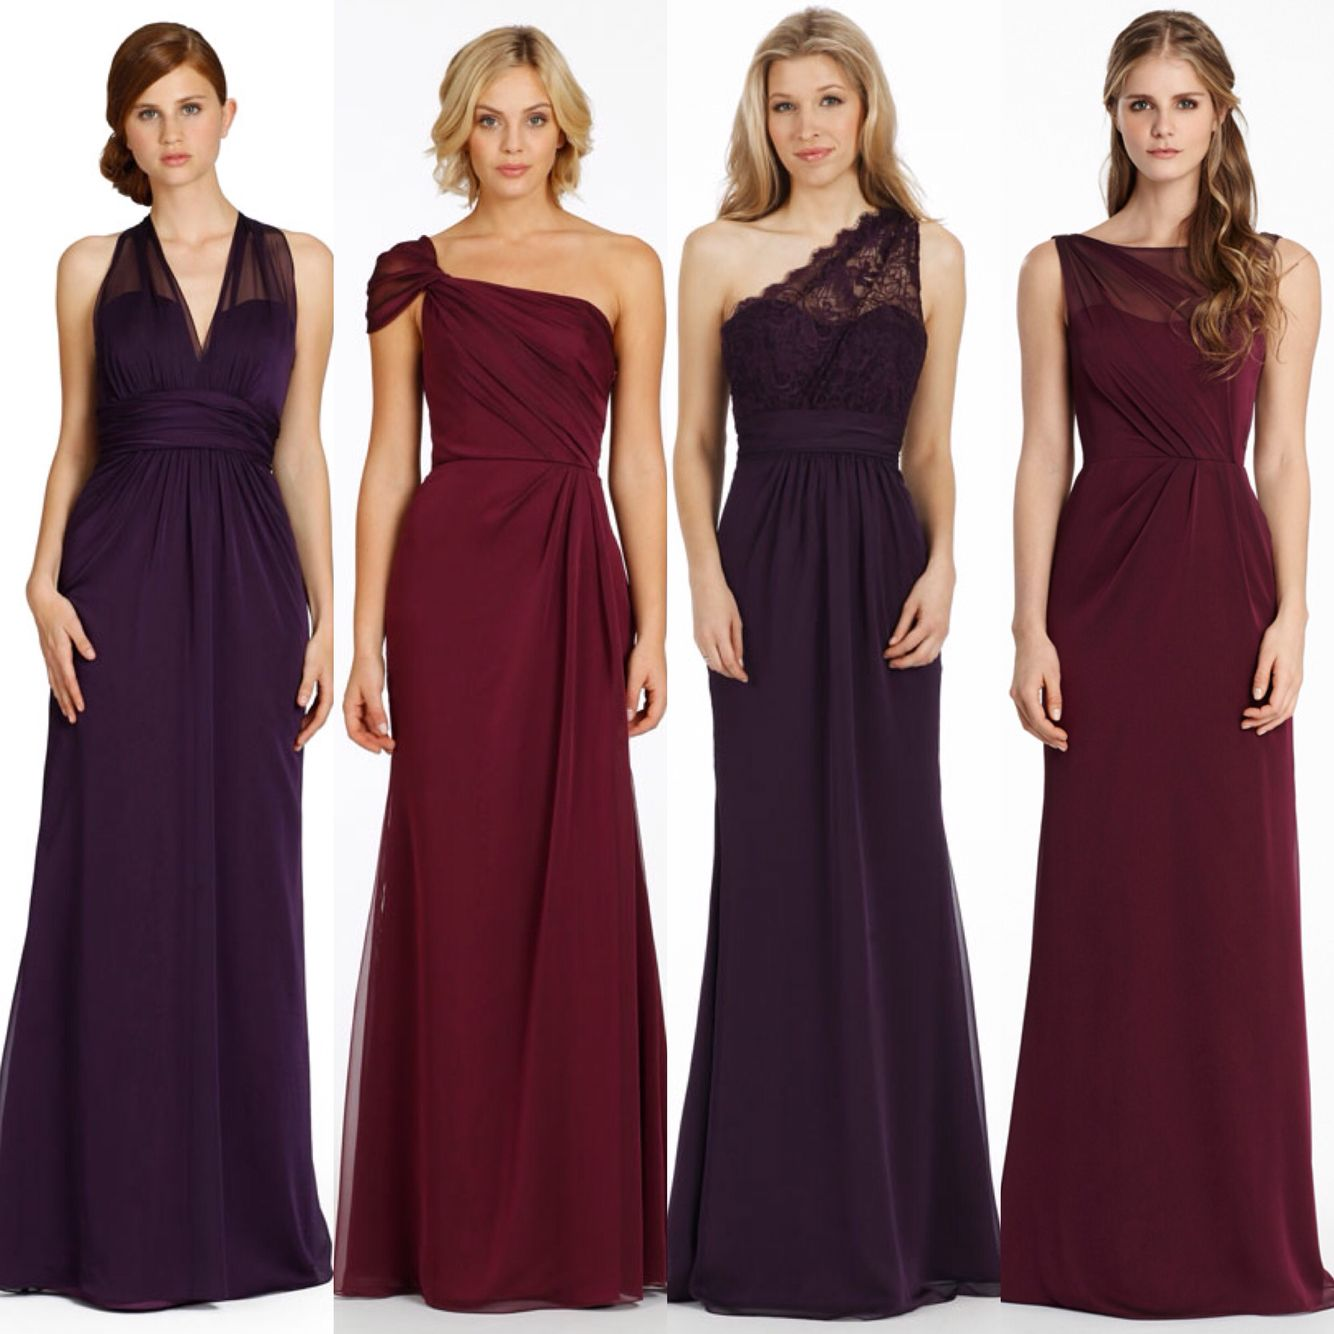 Aubergine Deep Red Purple Plum And Dark Cherry Colour Bridesmaid Dresses Available To Order At Daughterofeveboutique